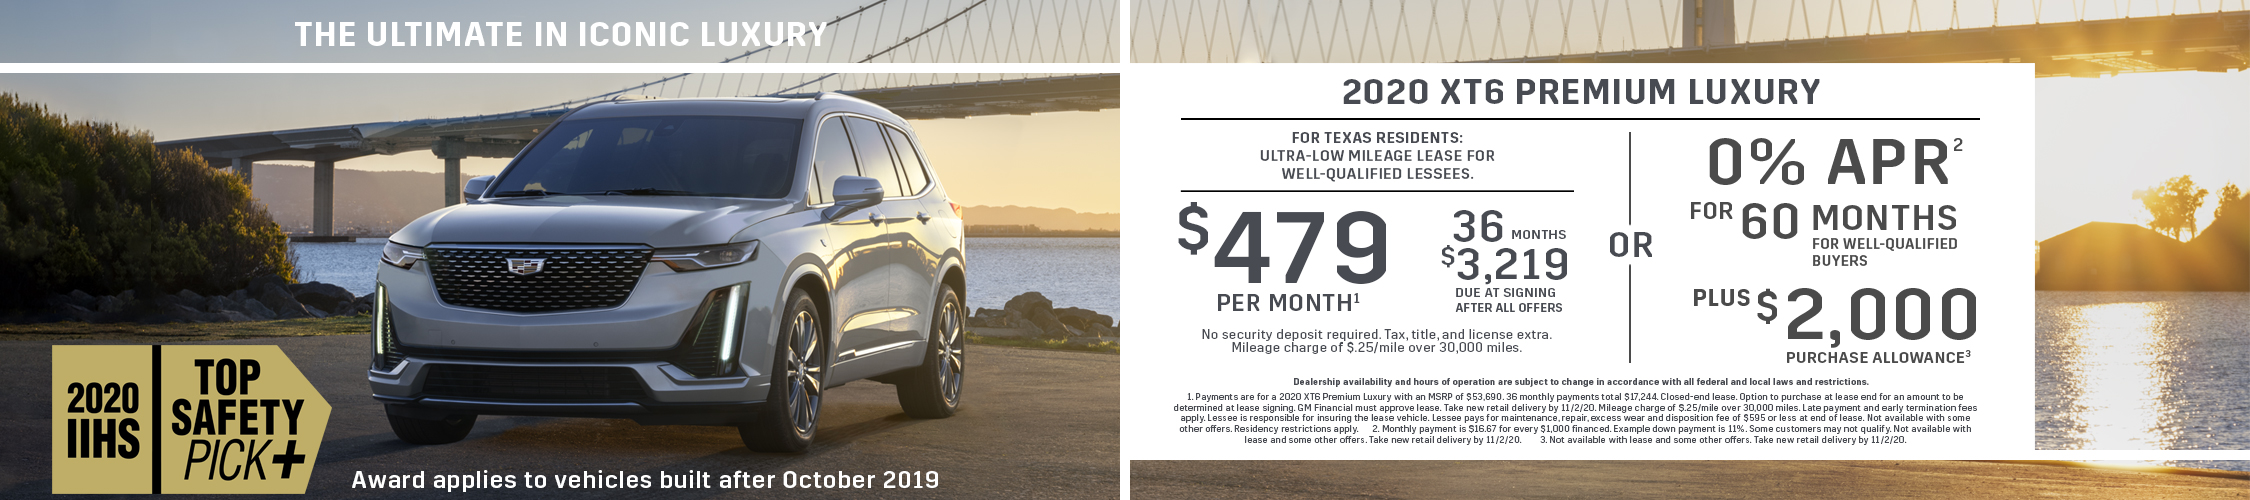 2020 XT6 Premium Luxury: Lease Offer (Image) - 865b59